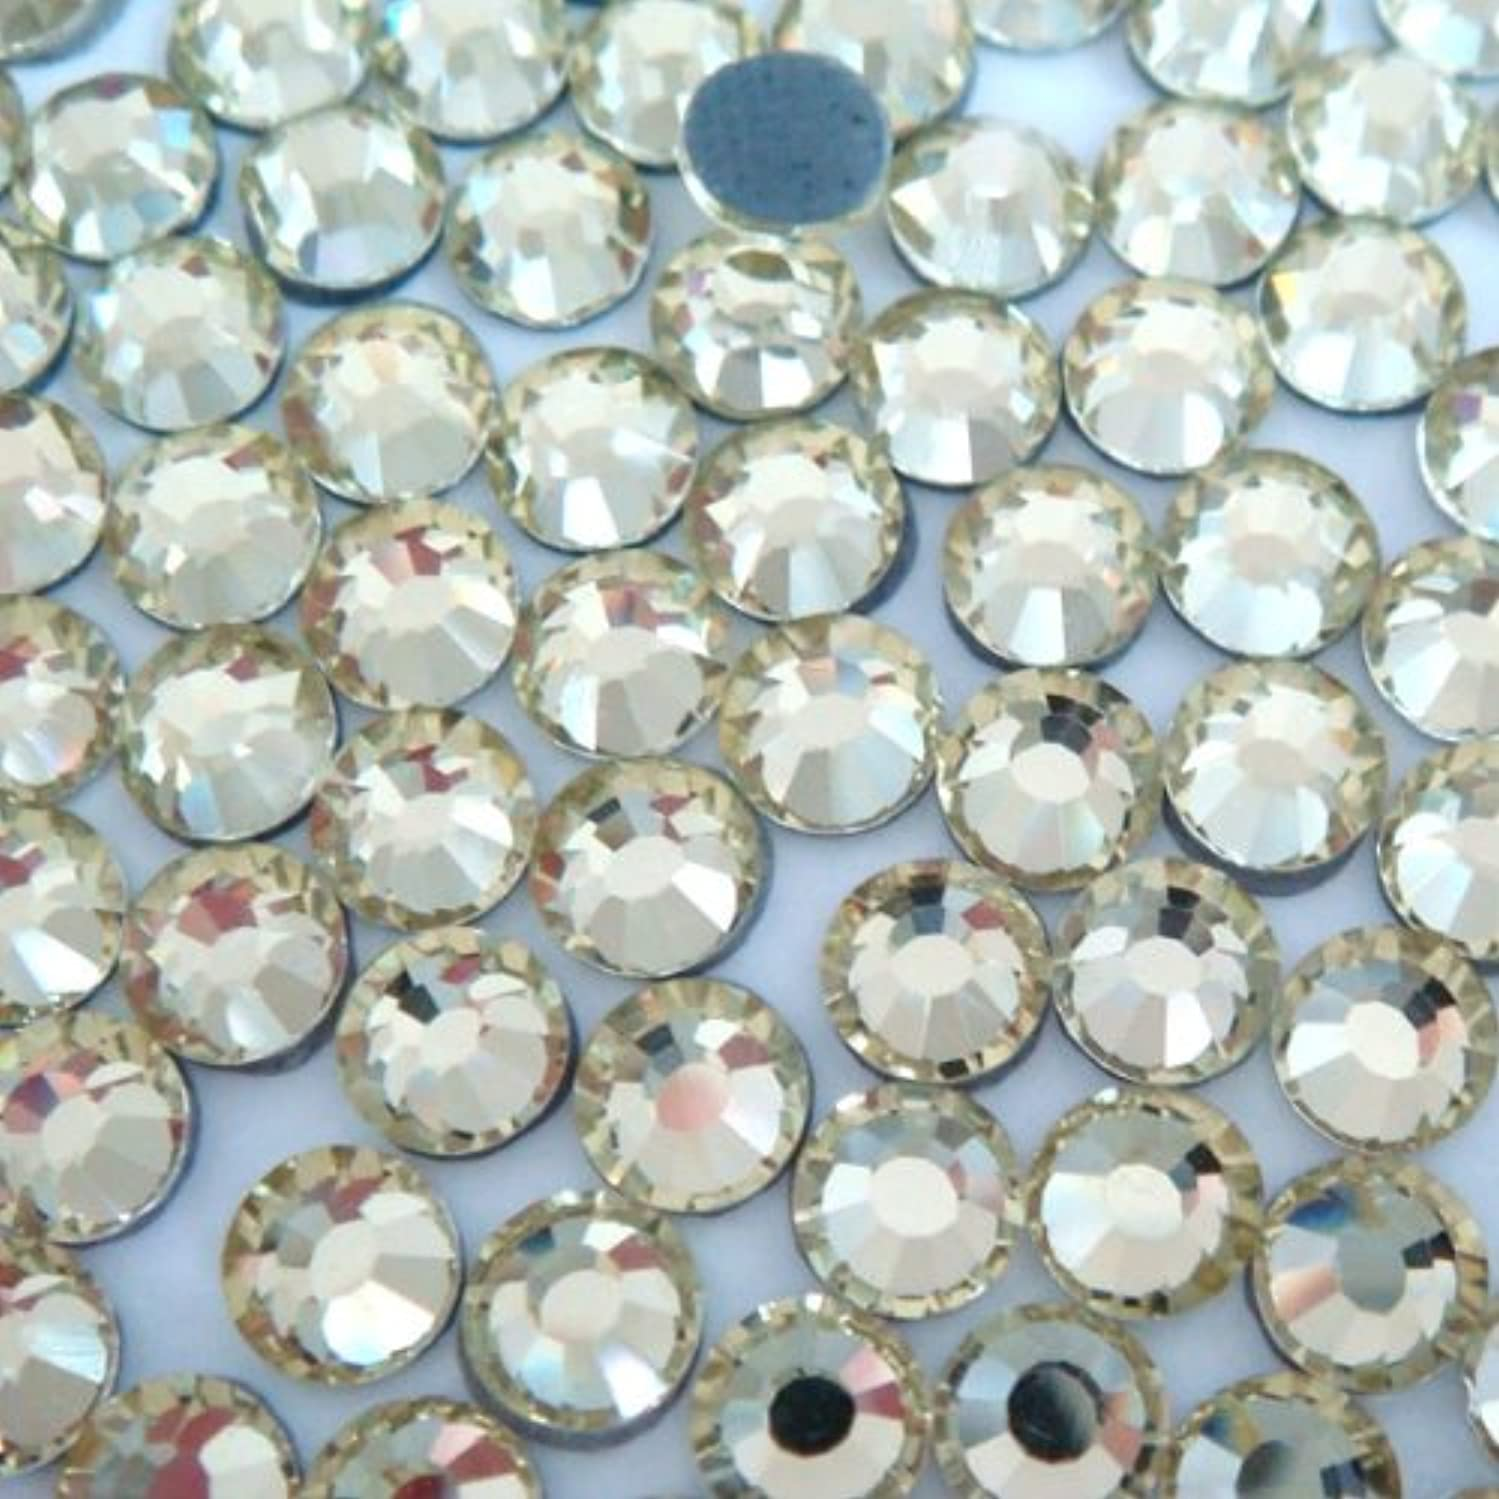 NEW ThreadNanny CZECH Quality 10gross (1440pcs) HotFix Rhinestones Crystals - 5mm/20ss, Crystal/Clear Color